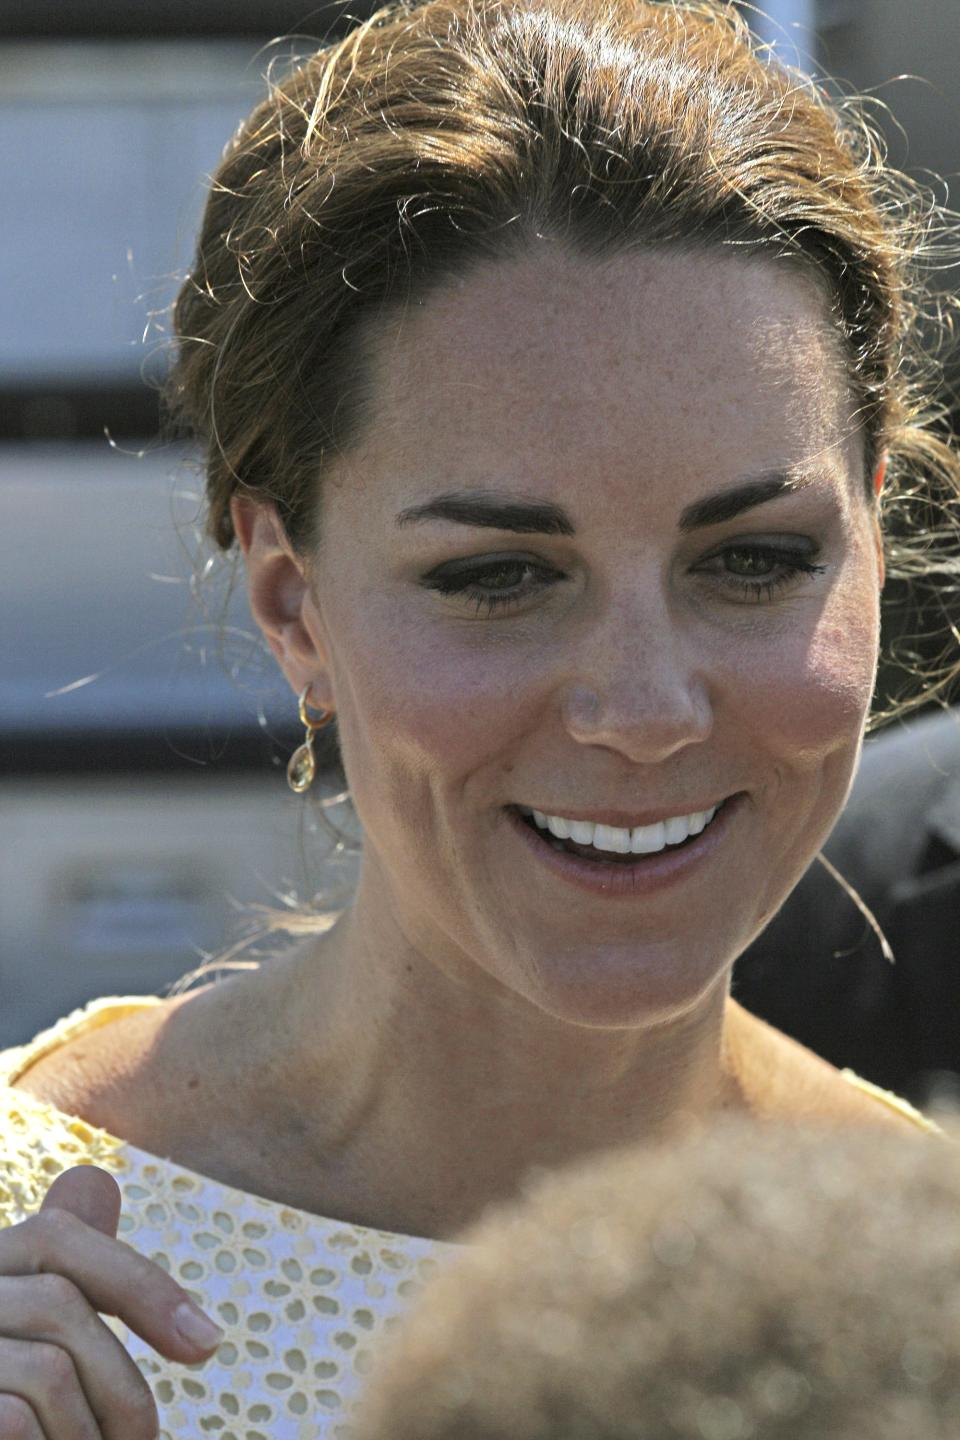 Britain's Kate, the Duchess of Cambridge, smiles as she and Prince William prepare to depart Honiara, Solomon Islands, Tuesday, Sept. 18, 2012, after an official visit to the South Pacific Island nation.  (AP Photo/Rick Rycroft)